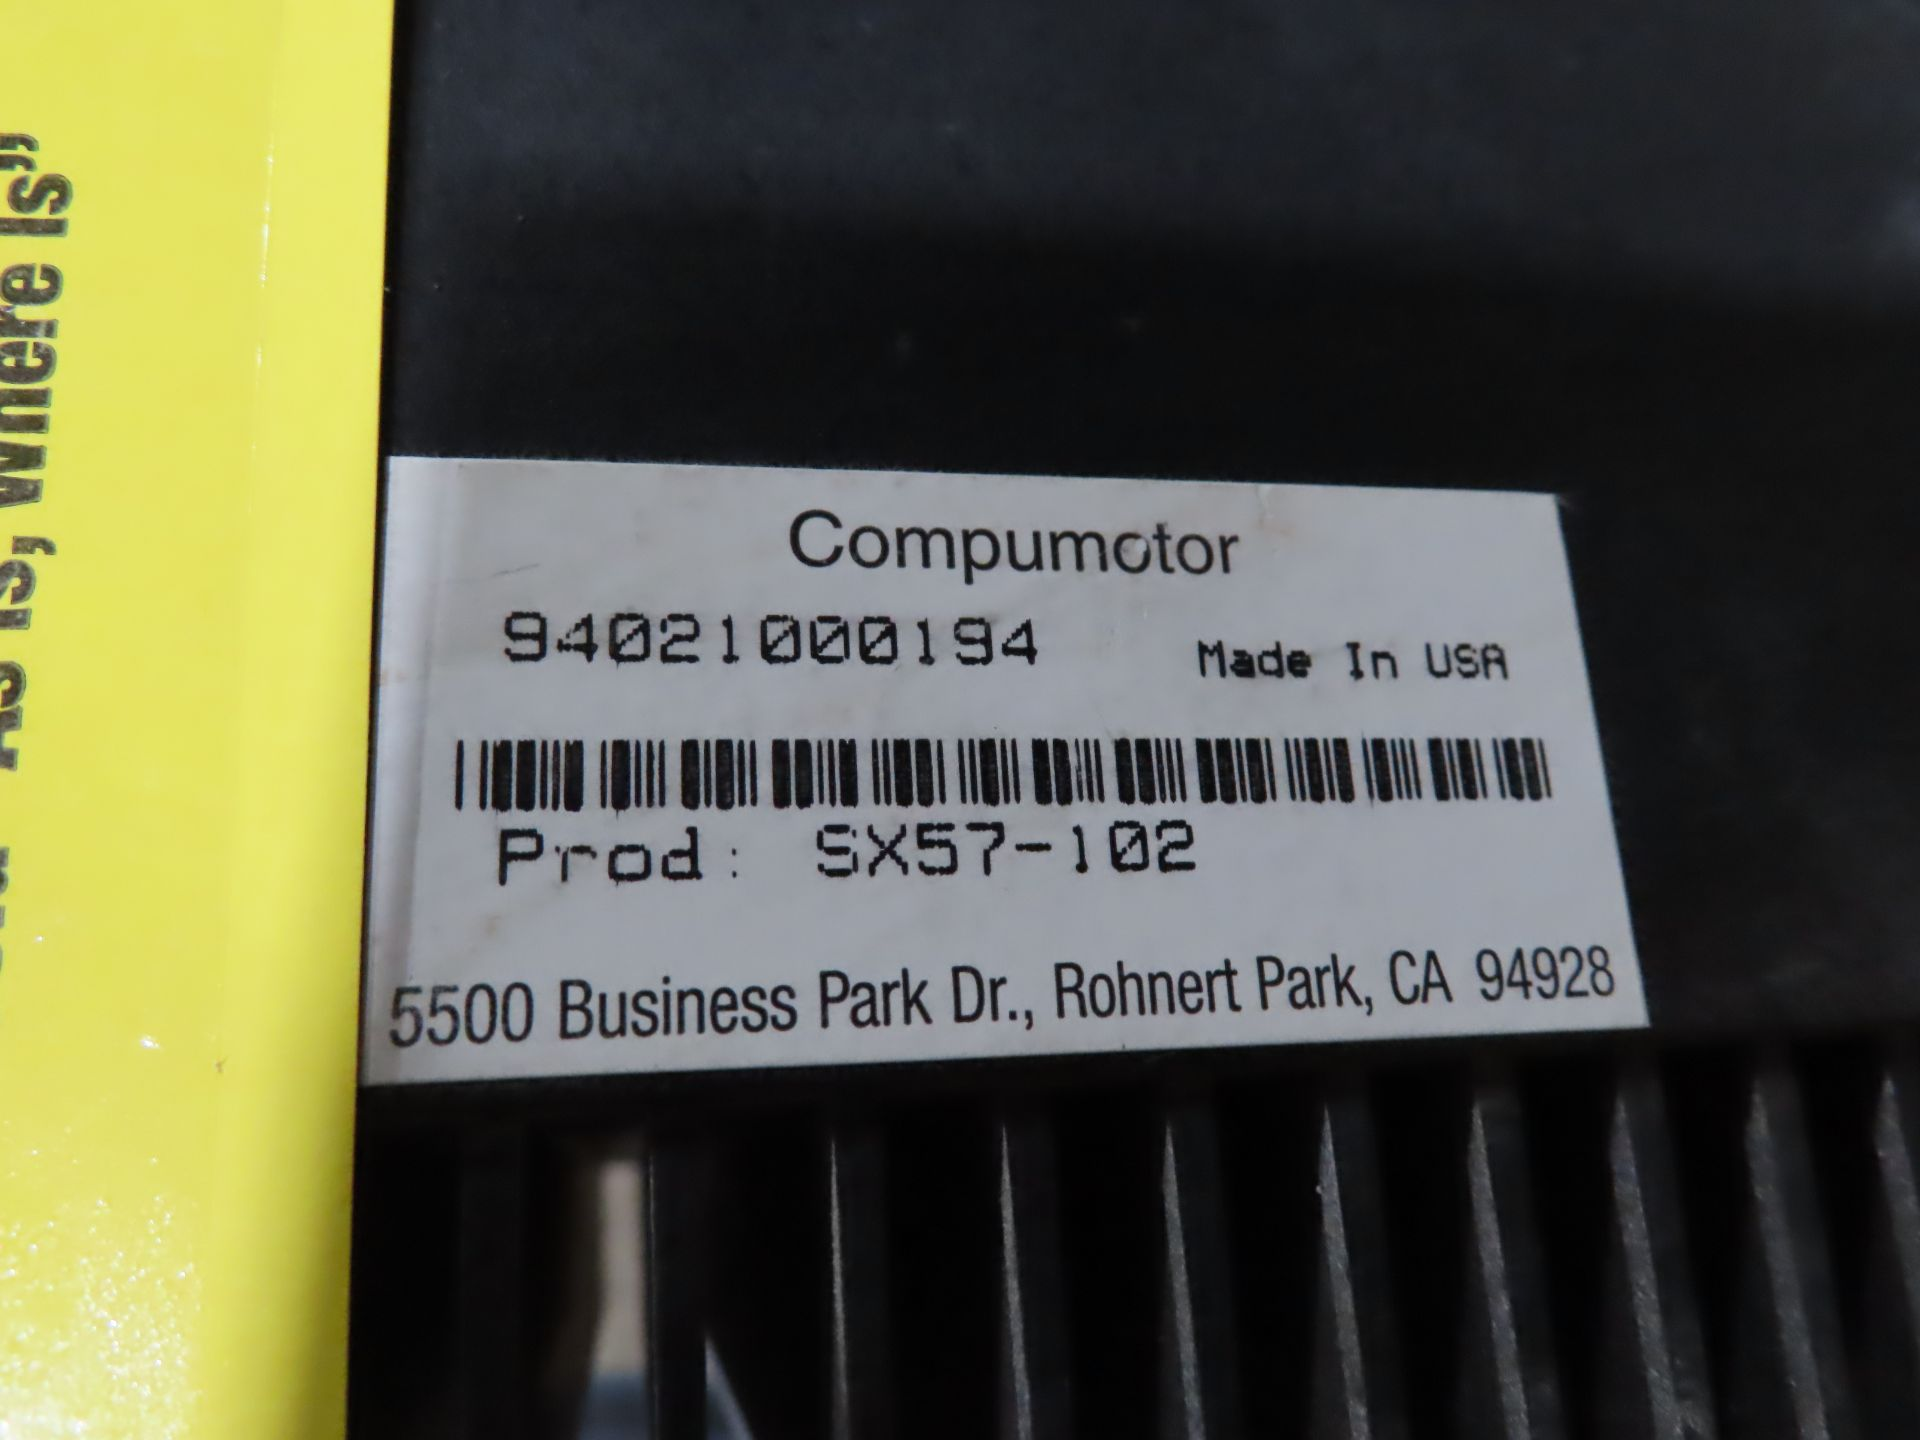 Lot 112 - Parker Compumotor model SX57-102, as always, with Brolyn LLC auctions, all lots can be picked up